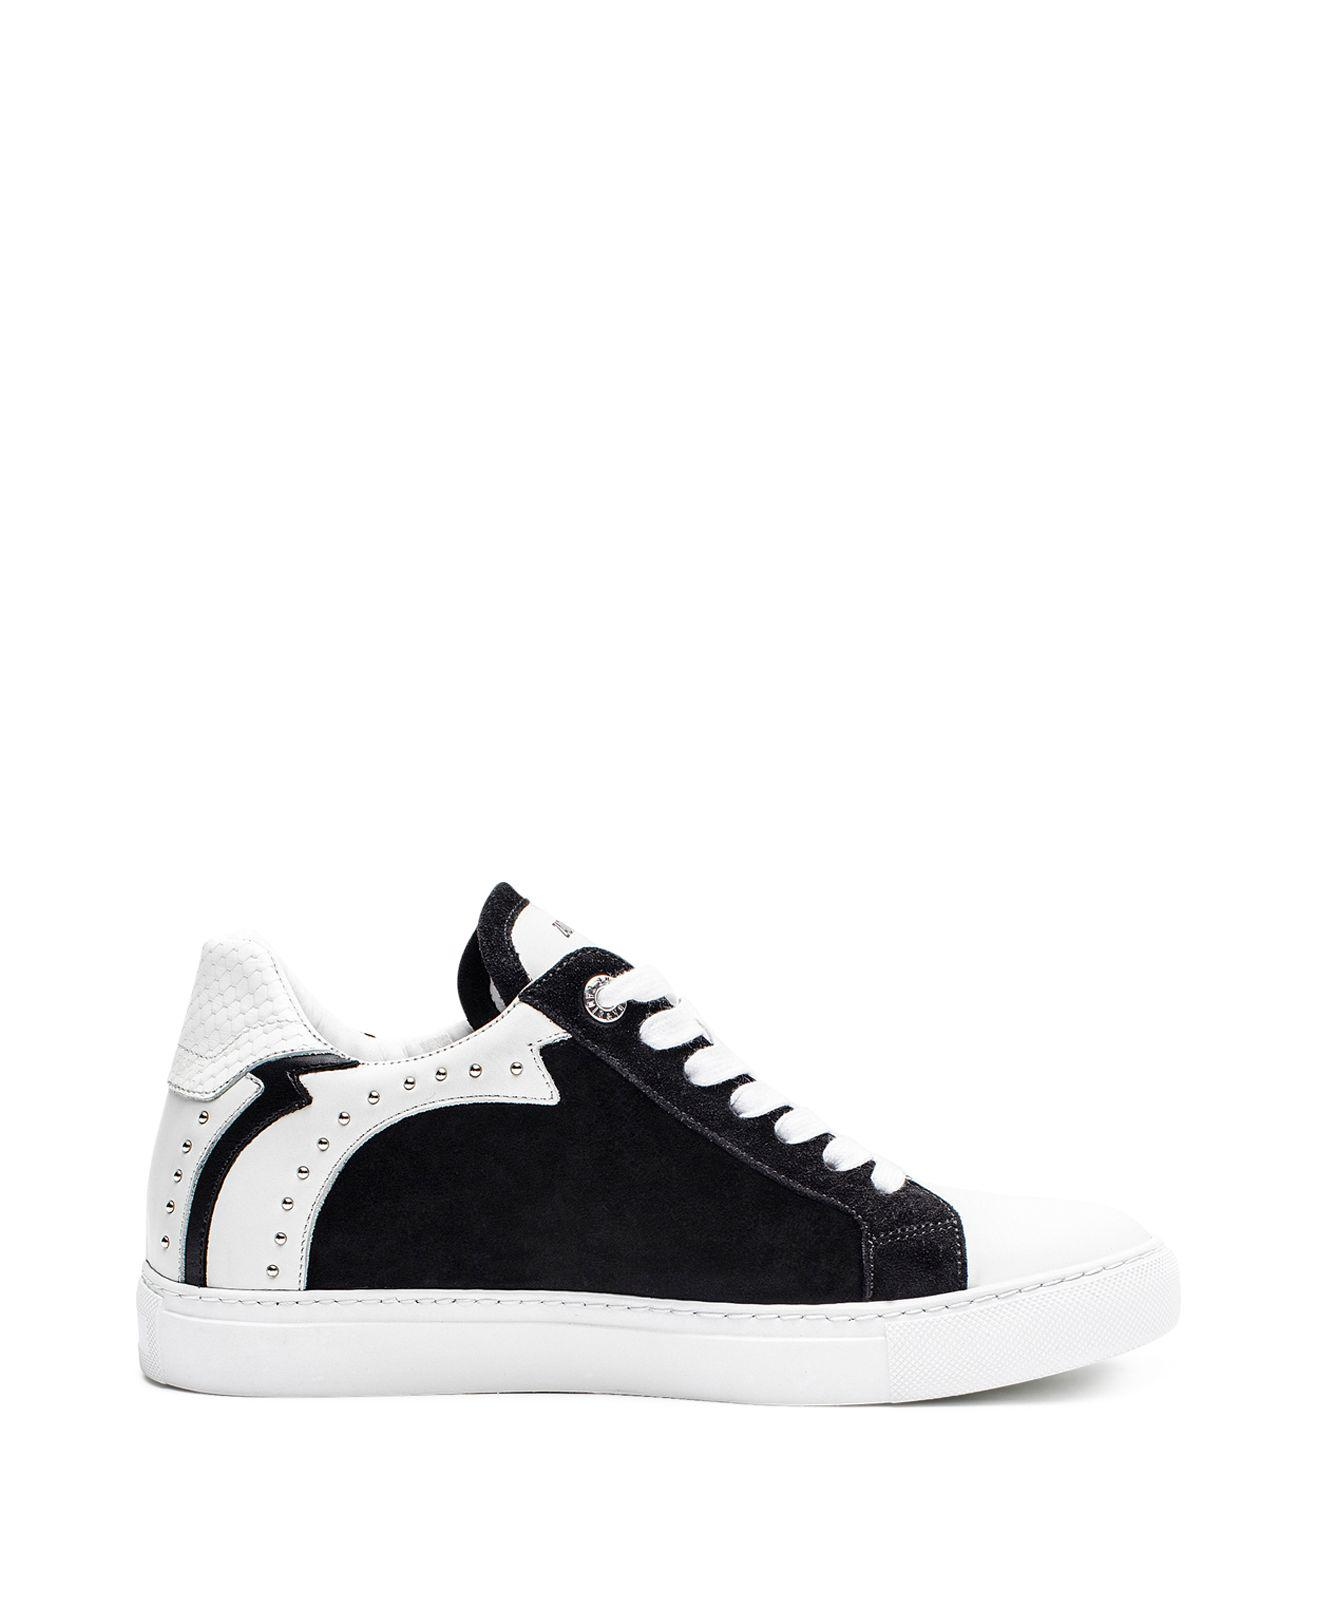 Zadig & Voltaire Women's Zv1747 Nash Studded Leather Sneakers PHFPT